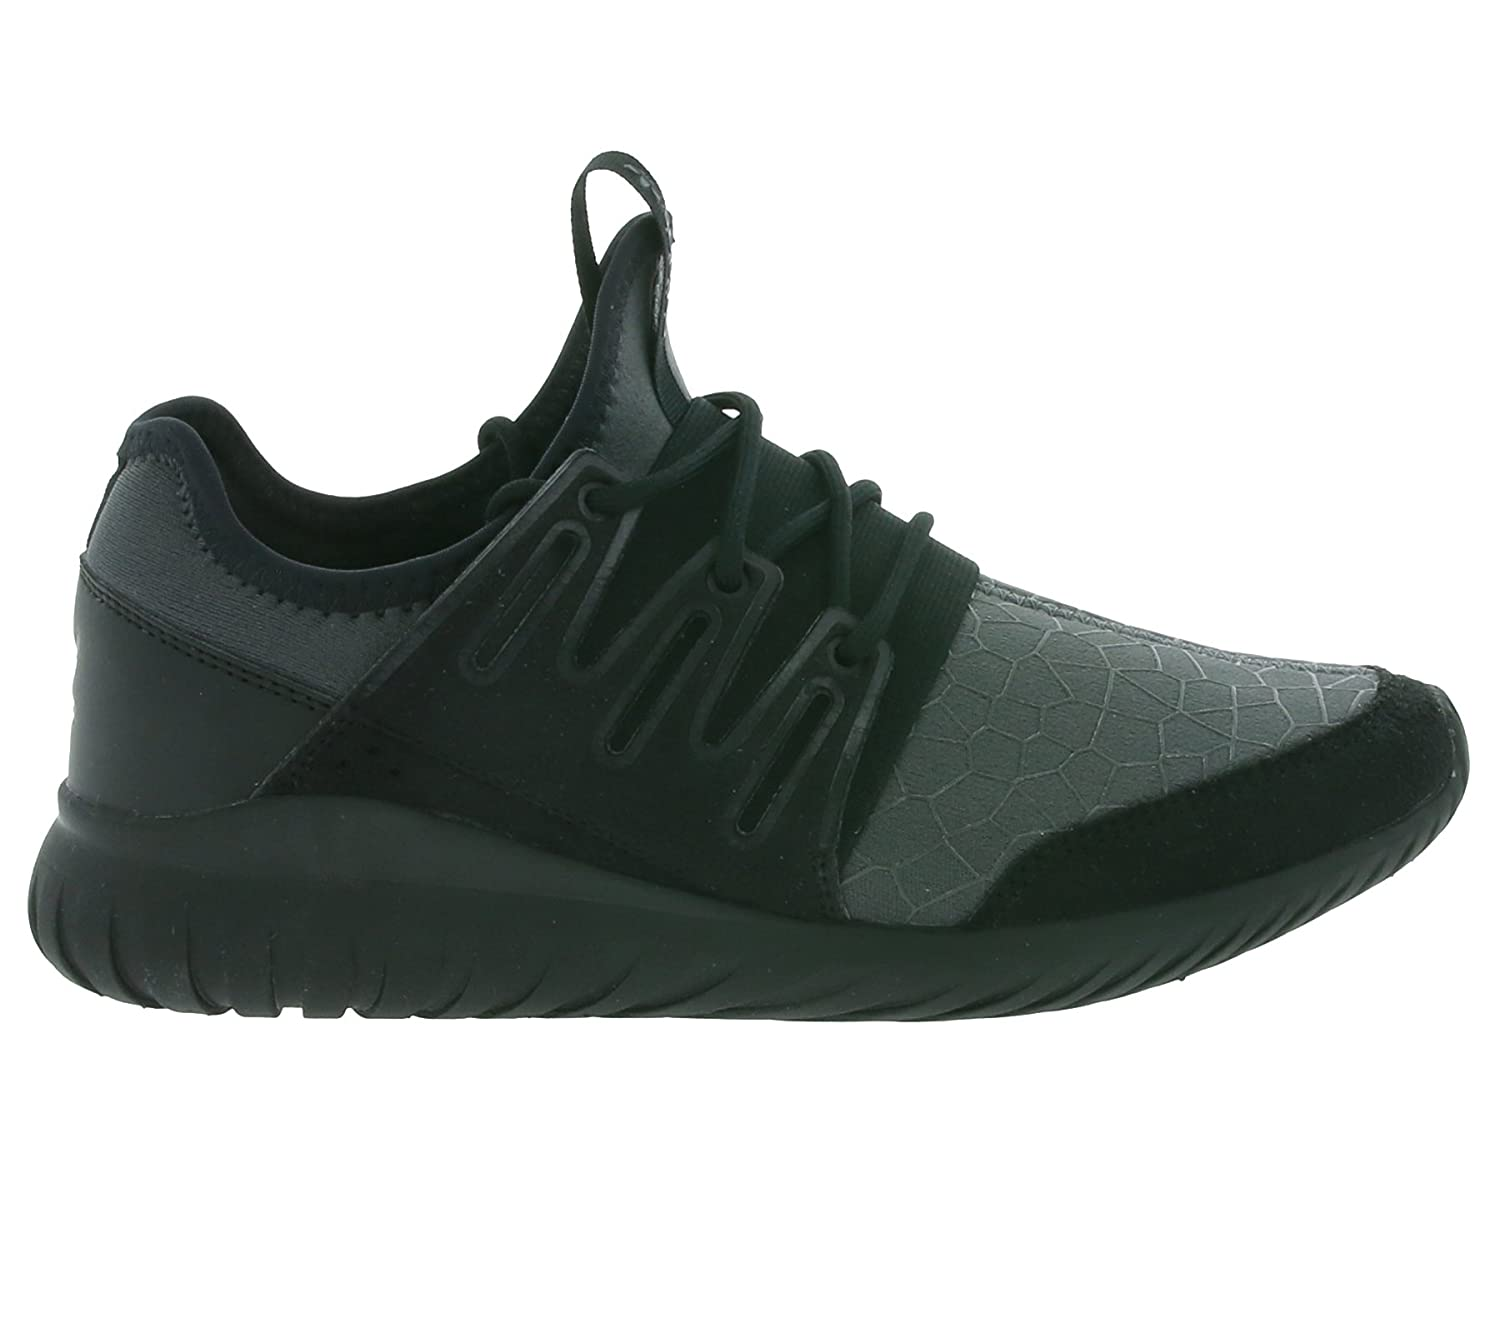 03b241c47e62e9 adidas Boys Originals Junior Boys Tubular Radial Trainers in Black - UK 4   Amazon.co.uk  Shoes   Bags